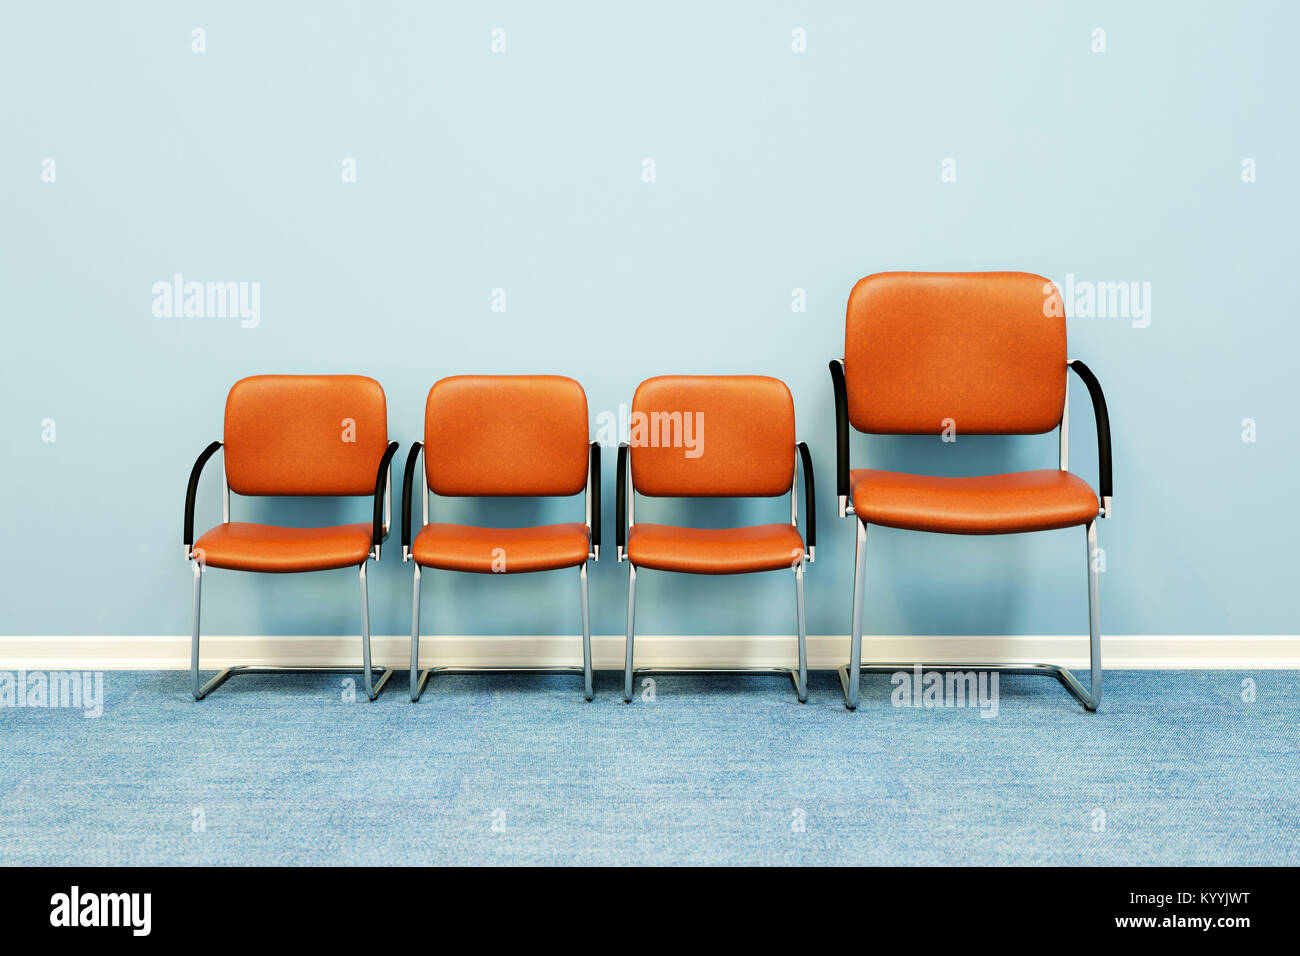 One large and three small chairs in a row against a wall in an empty room - concept image - Stock Image